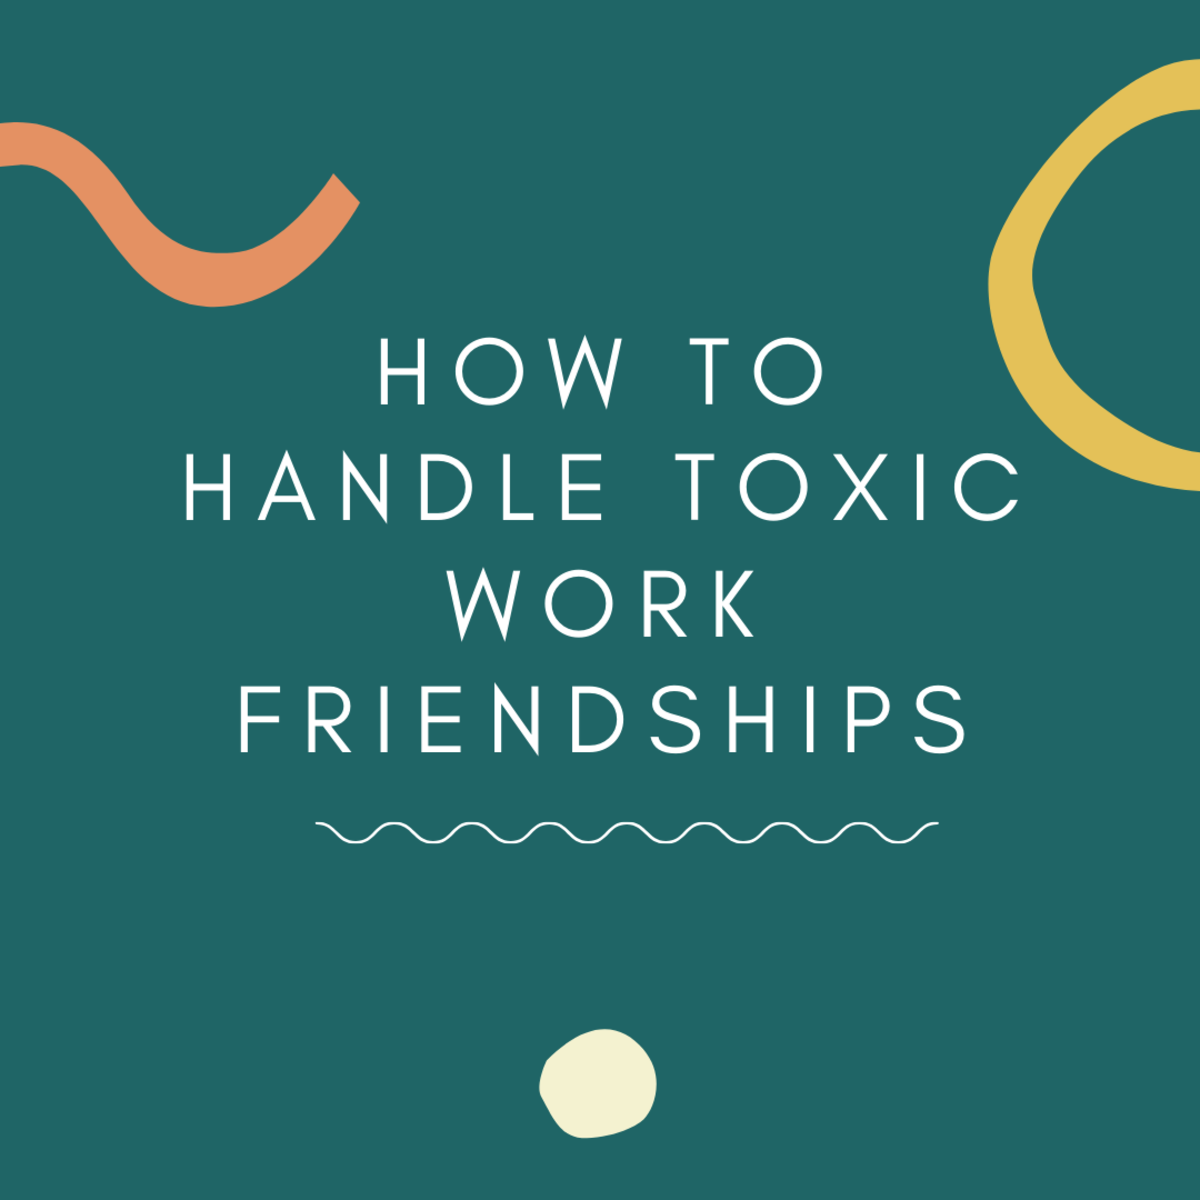 Toxic Work Friendships: How to Spot Them and End Them Without Hurting Your Job